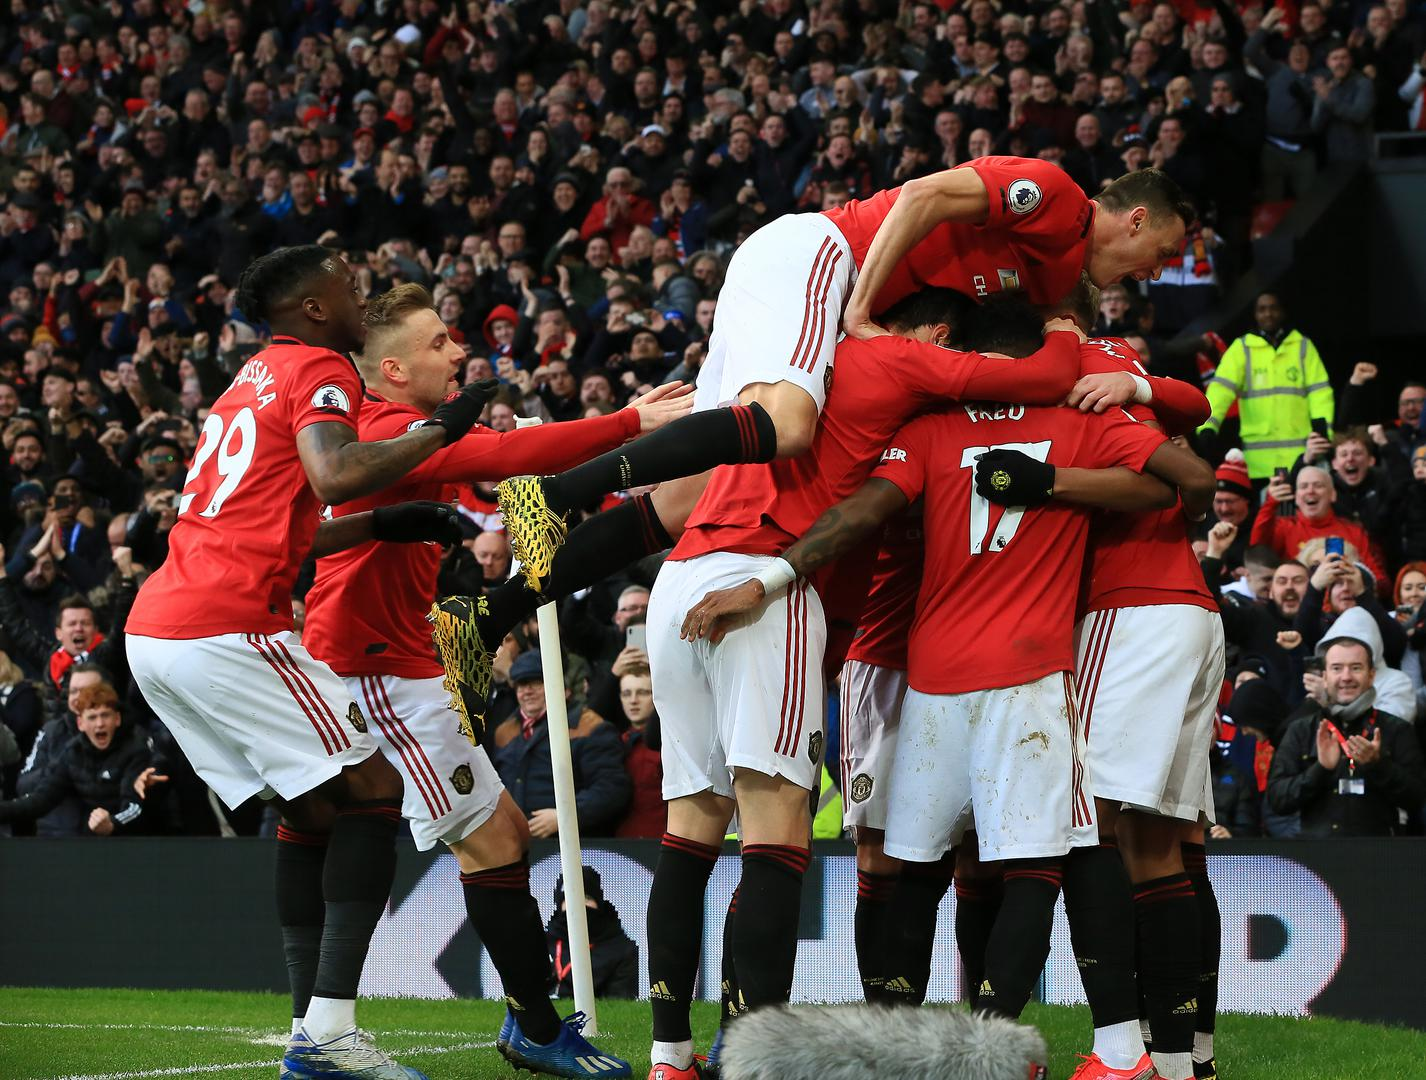 United celebrate Anthony Martial's goal.